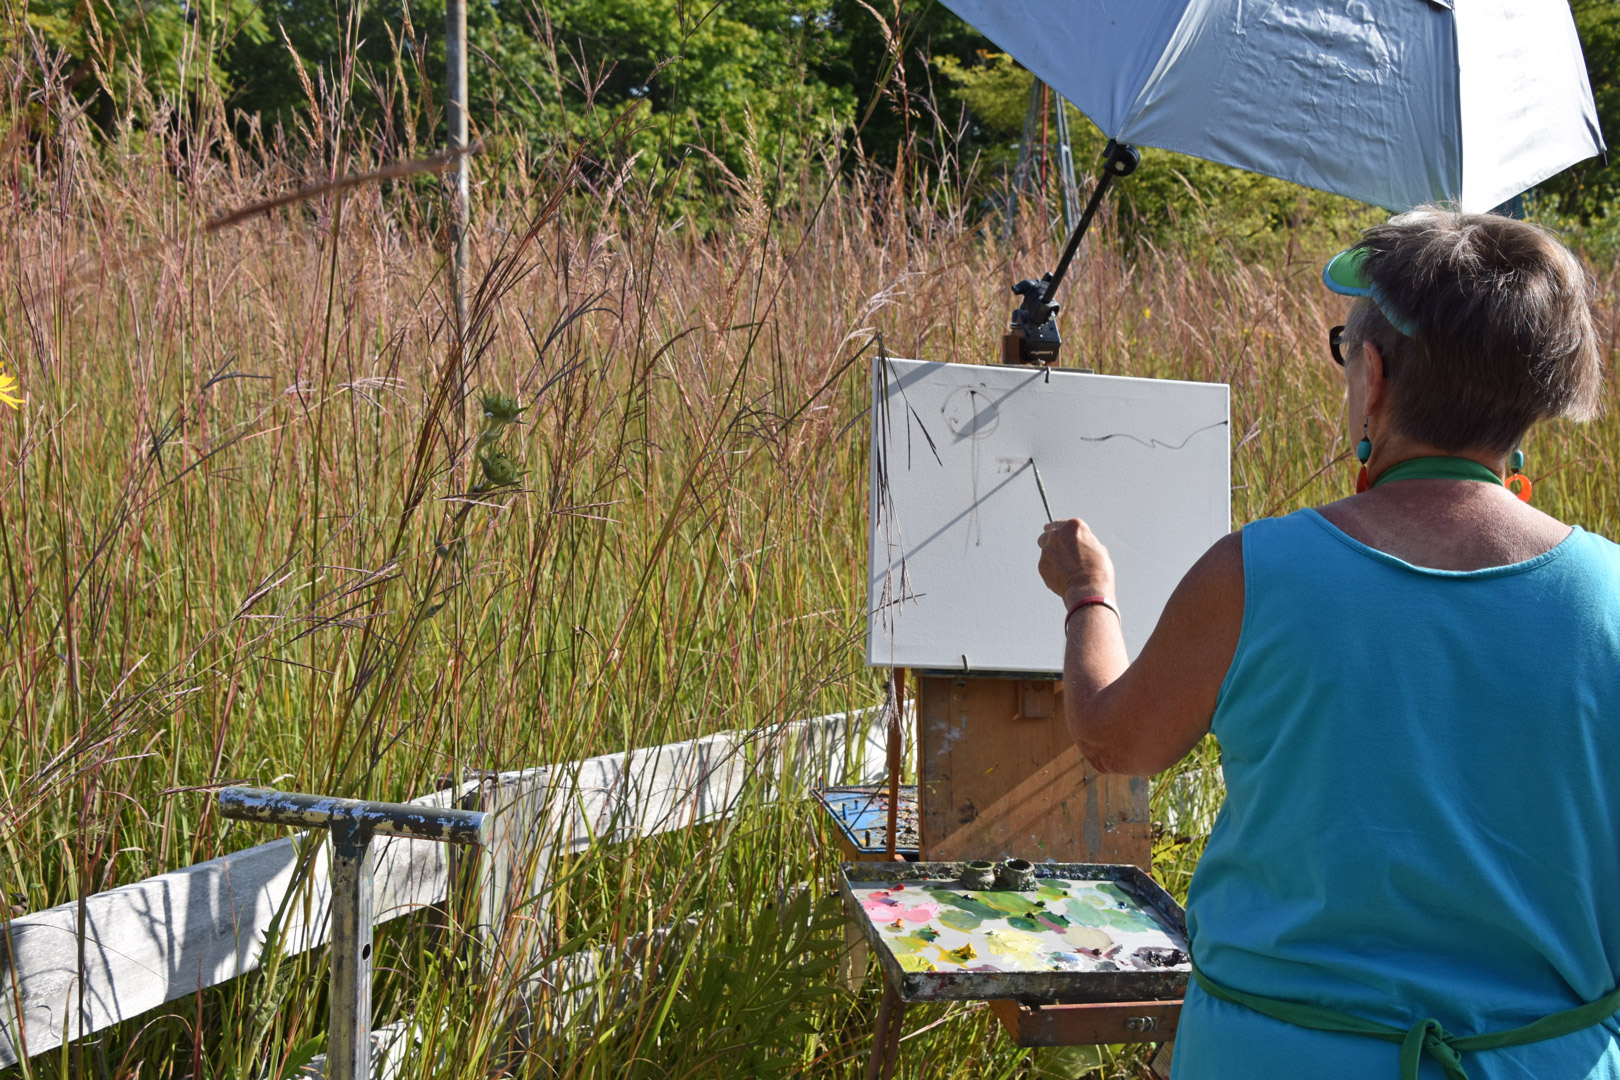 Plein Air art society enjoys a Paint Out at Inniswood - Metro Parks ...